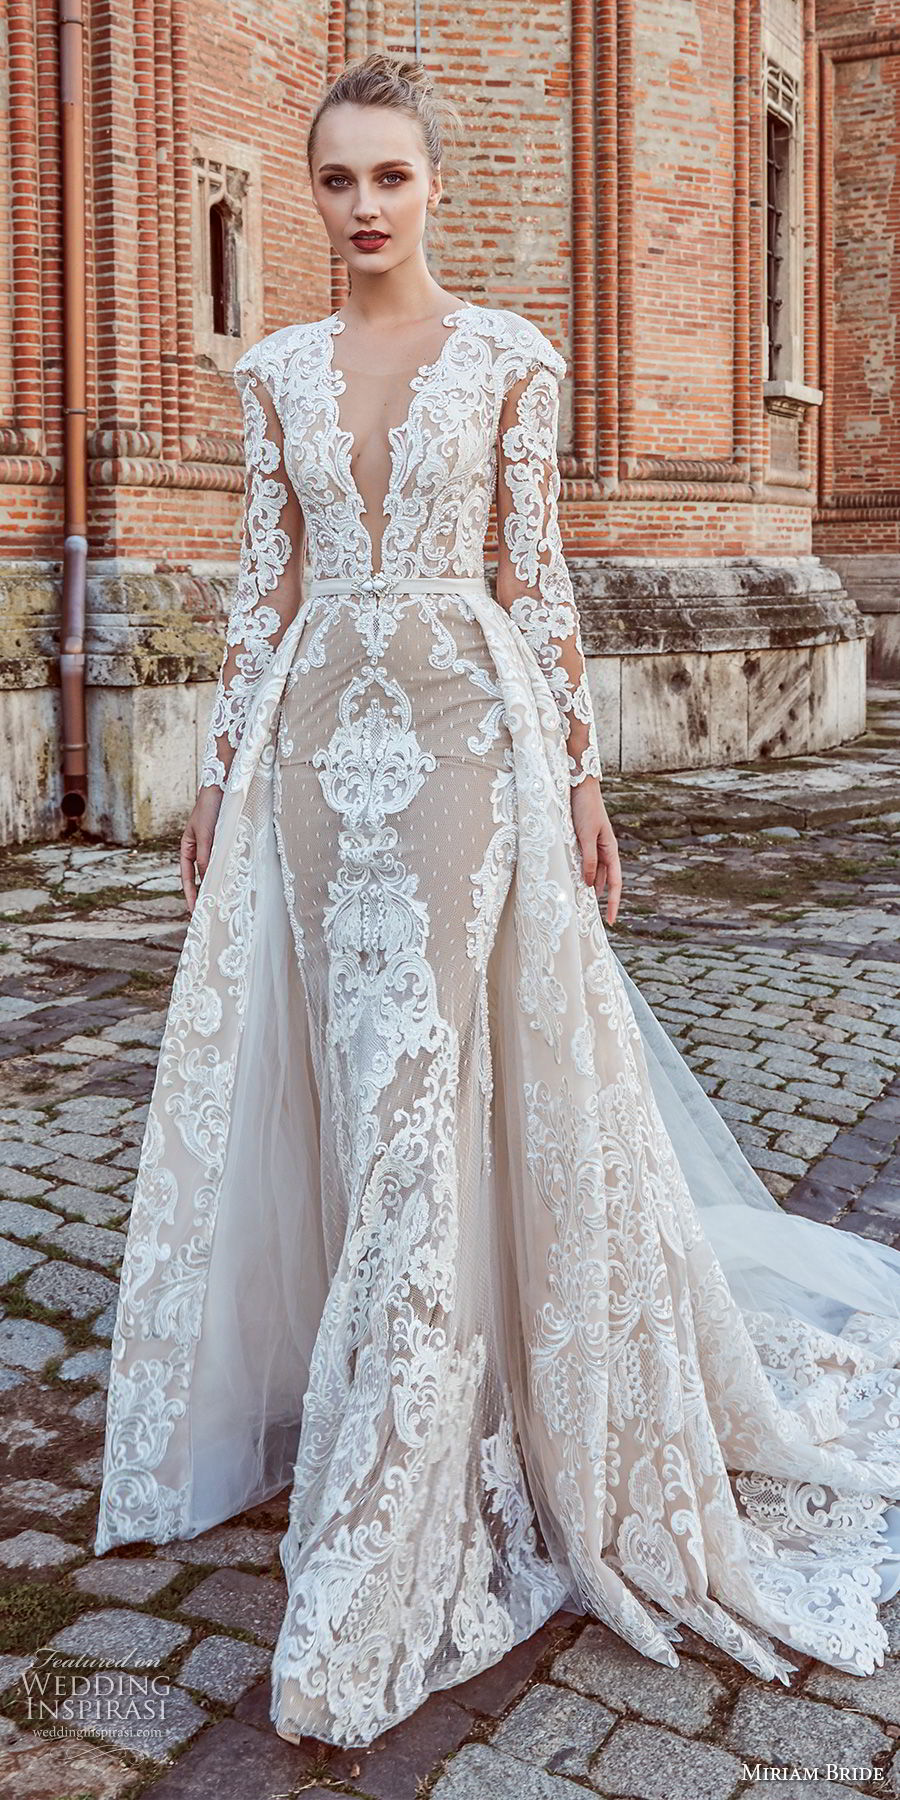 miriams bride 2018 bridal long sleeves deep v neck full embellishment glamorous elegant fit and flare wedding dress a line overskirt sheer button back royal train (4) mv